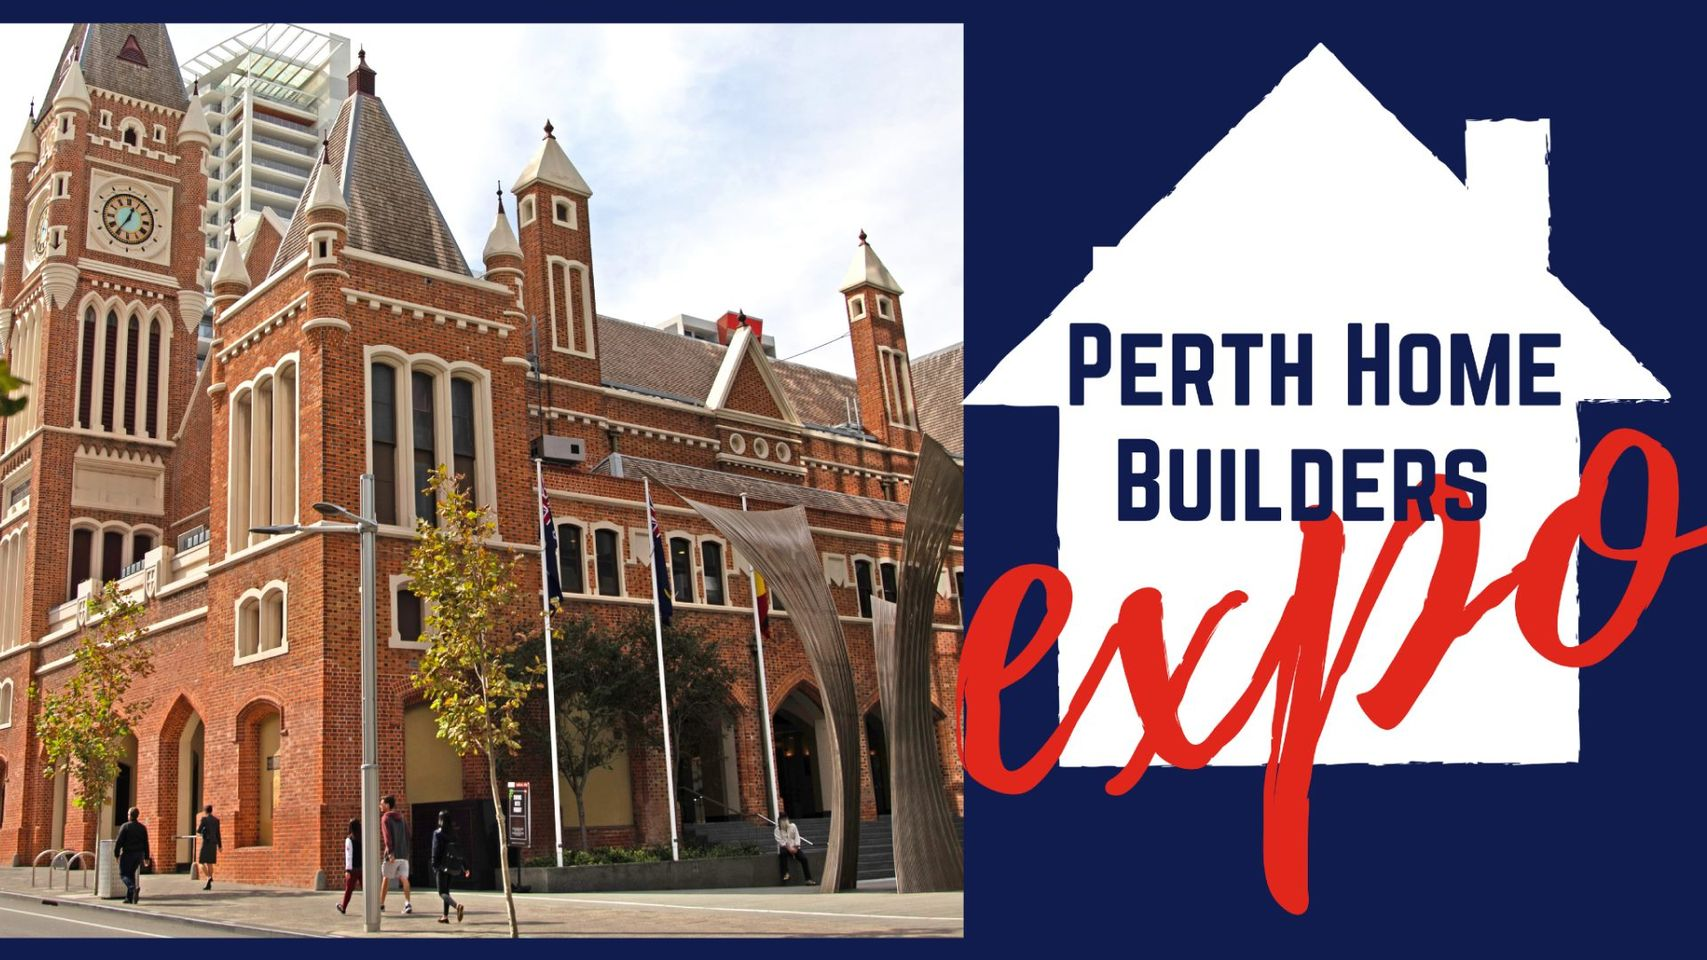 PERTH HOME BUILDERS EXPO 2021